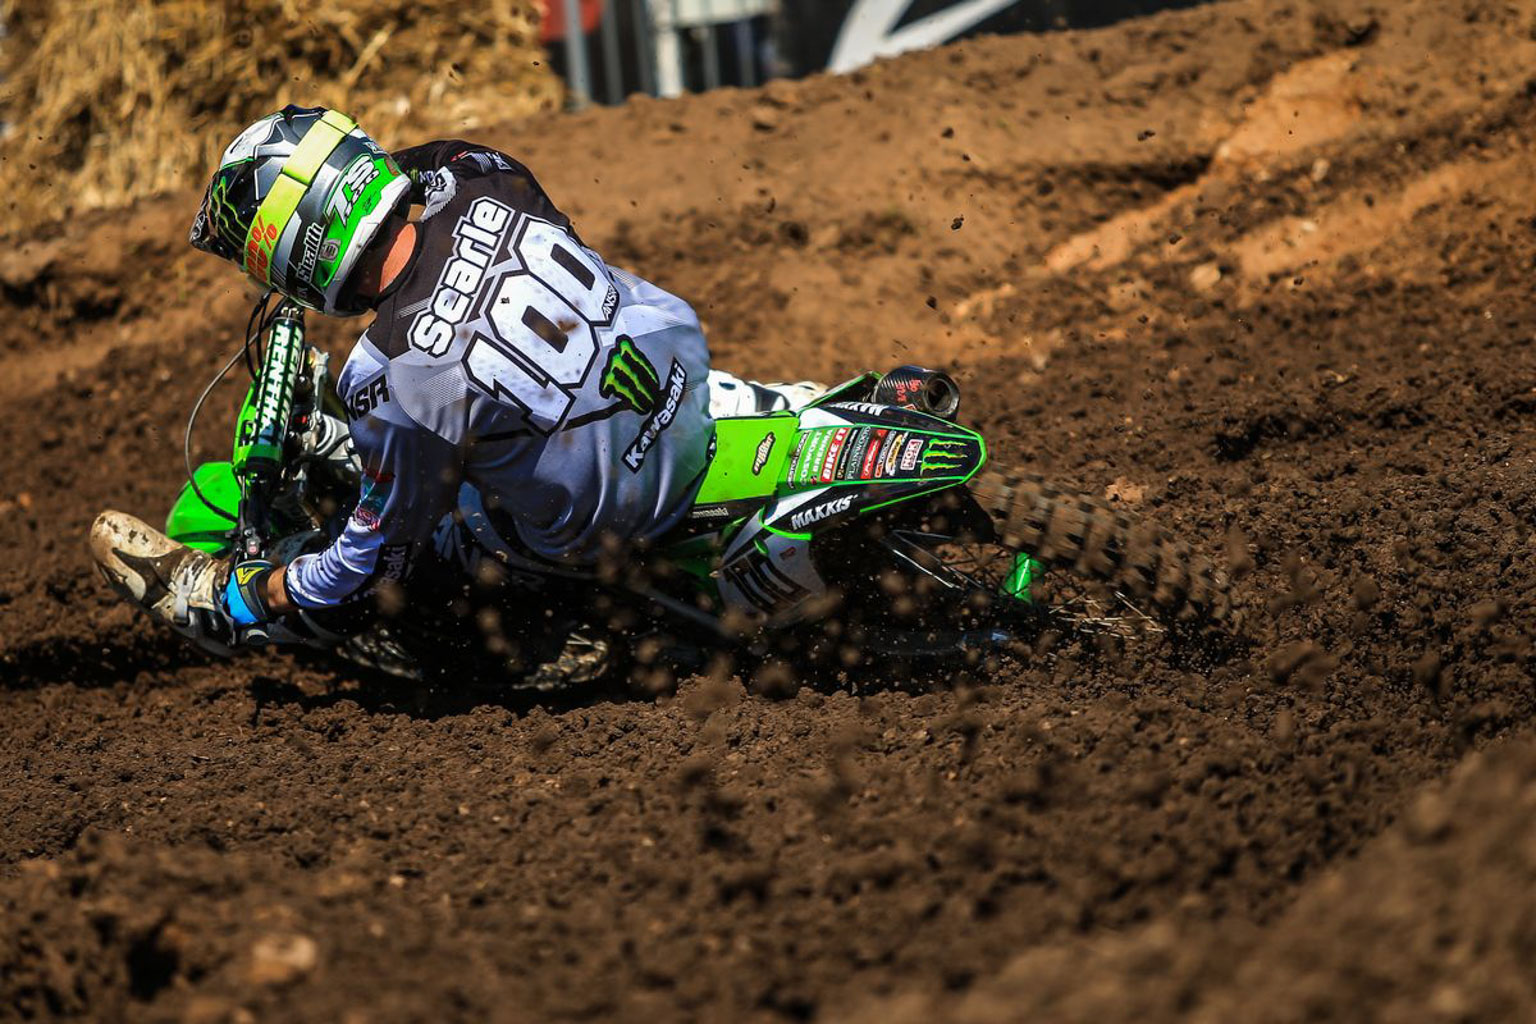 Tommy Searle is flying the flag for Britain and Kawasaki